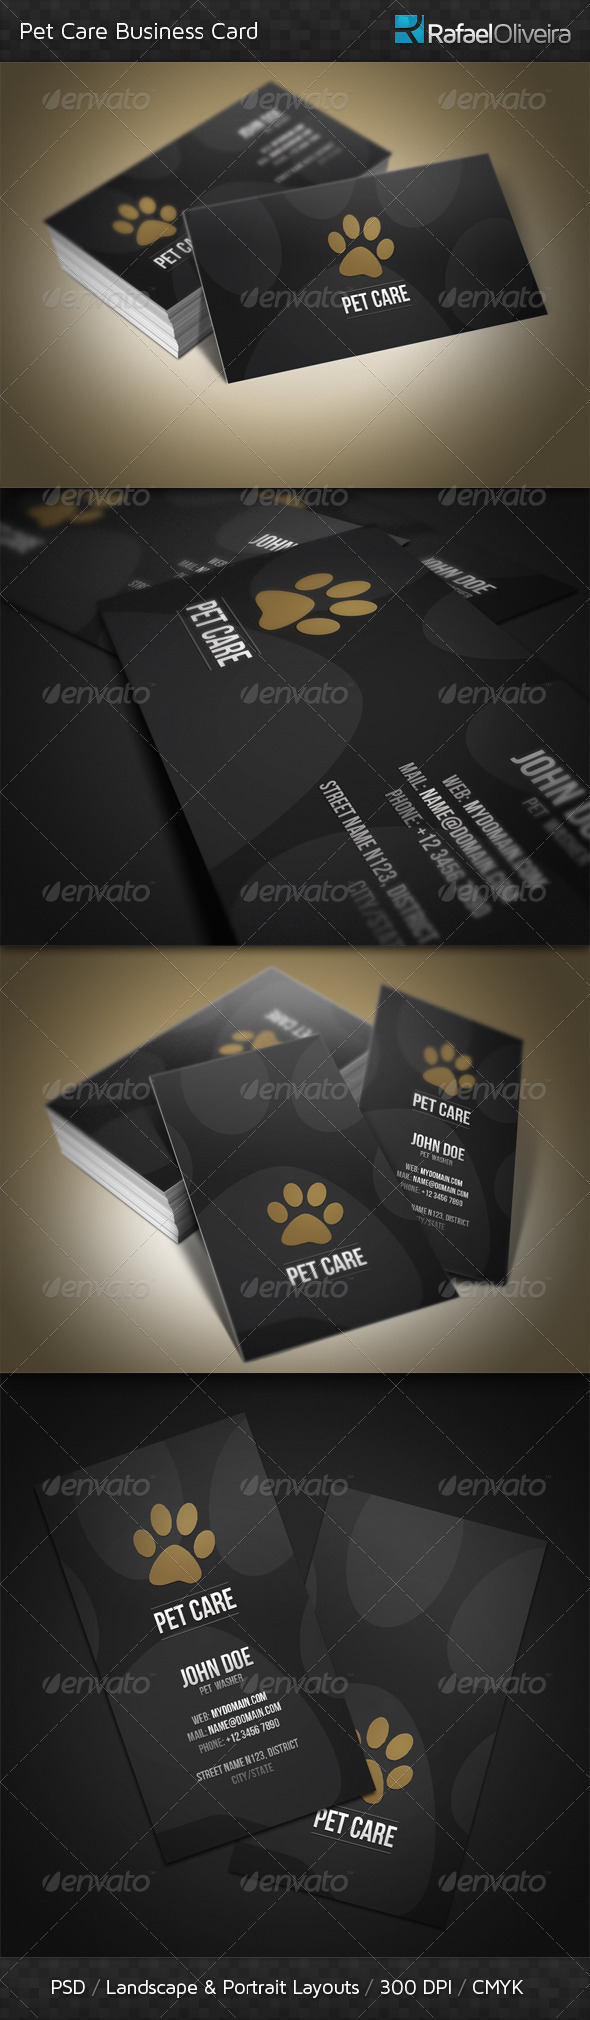 Pet Care Business Card by RafaelOliveira | GraphicRiver